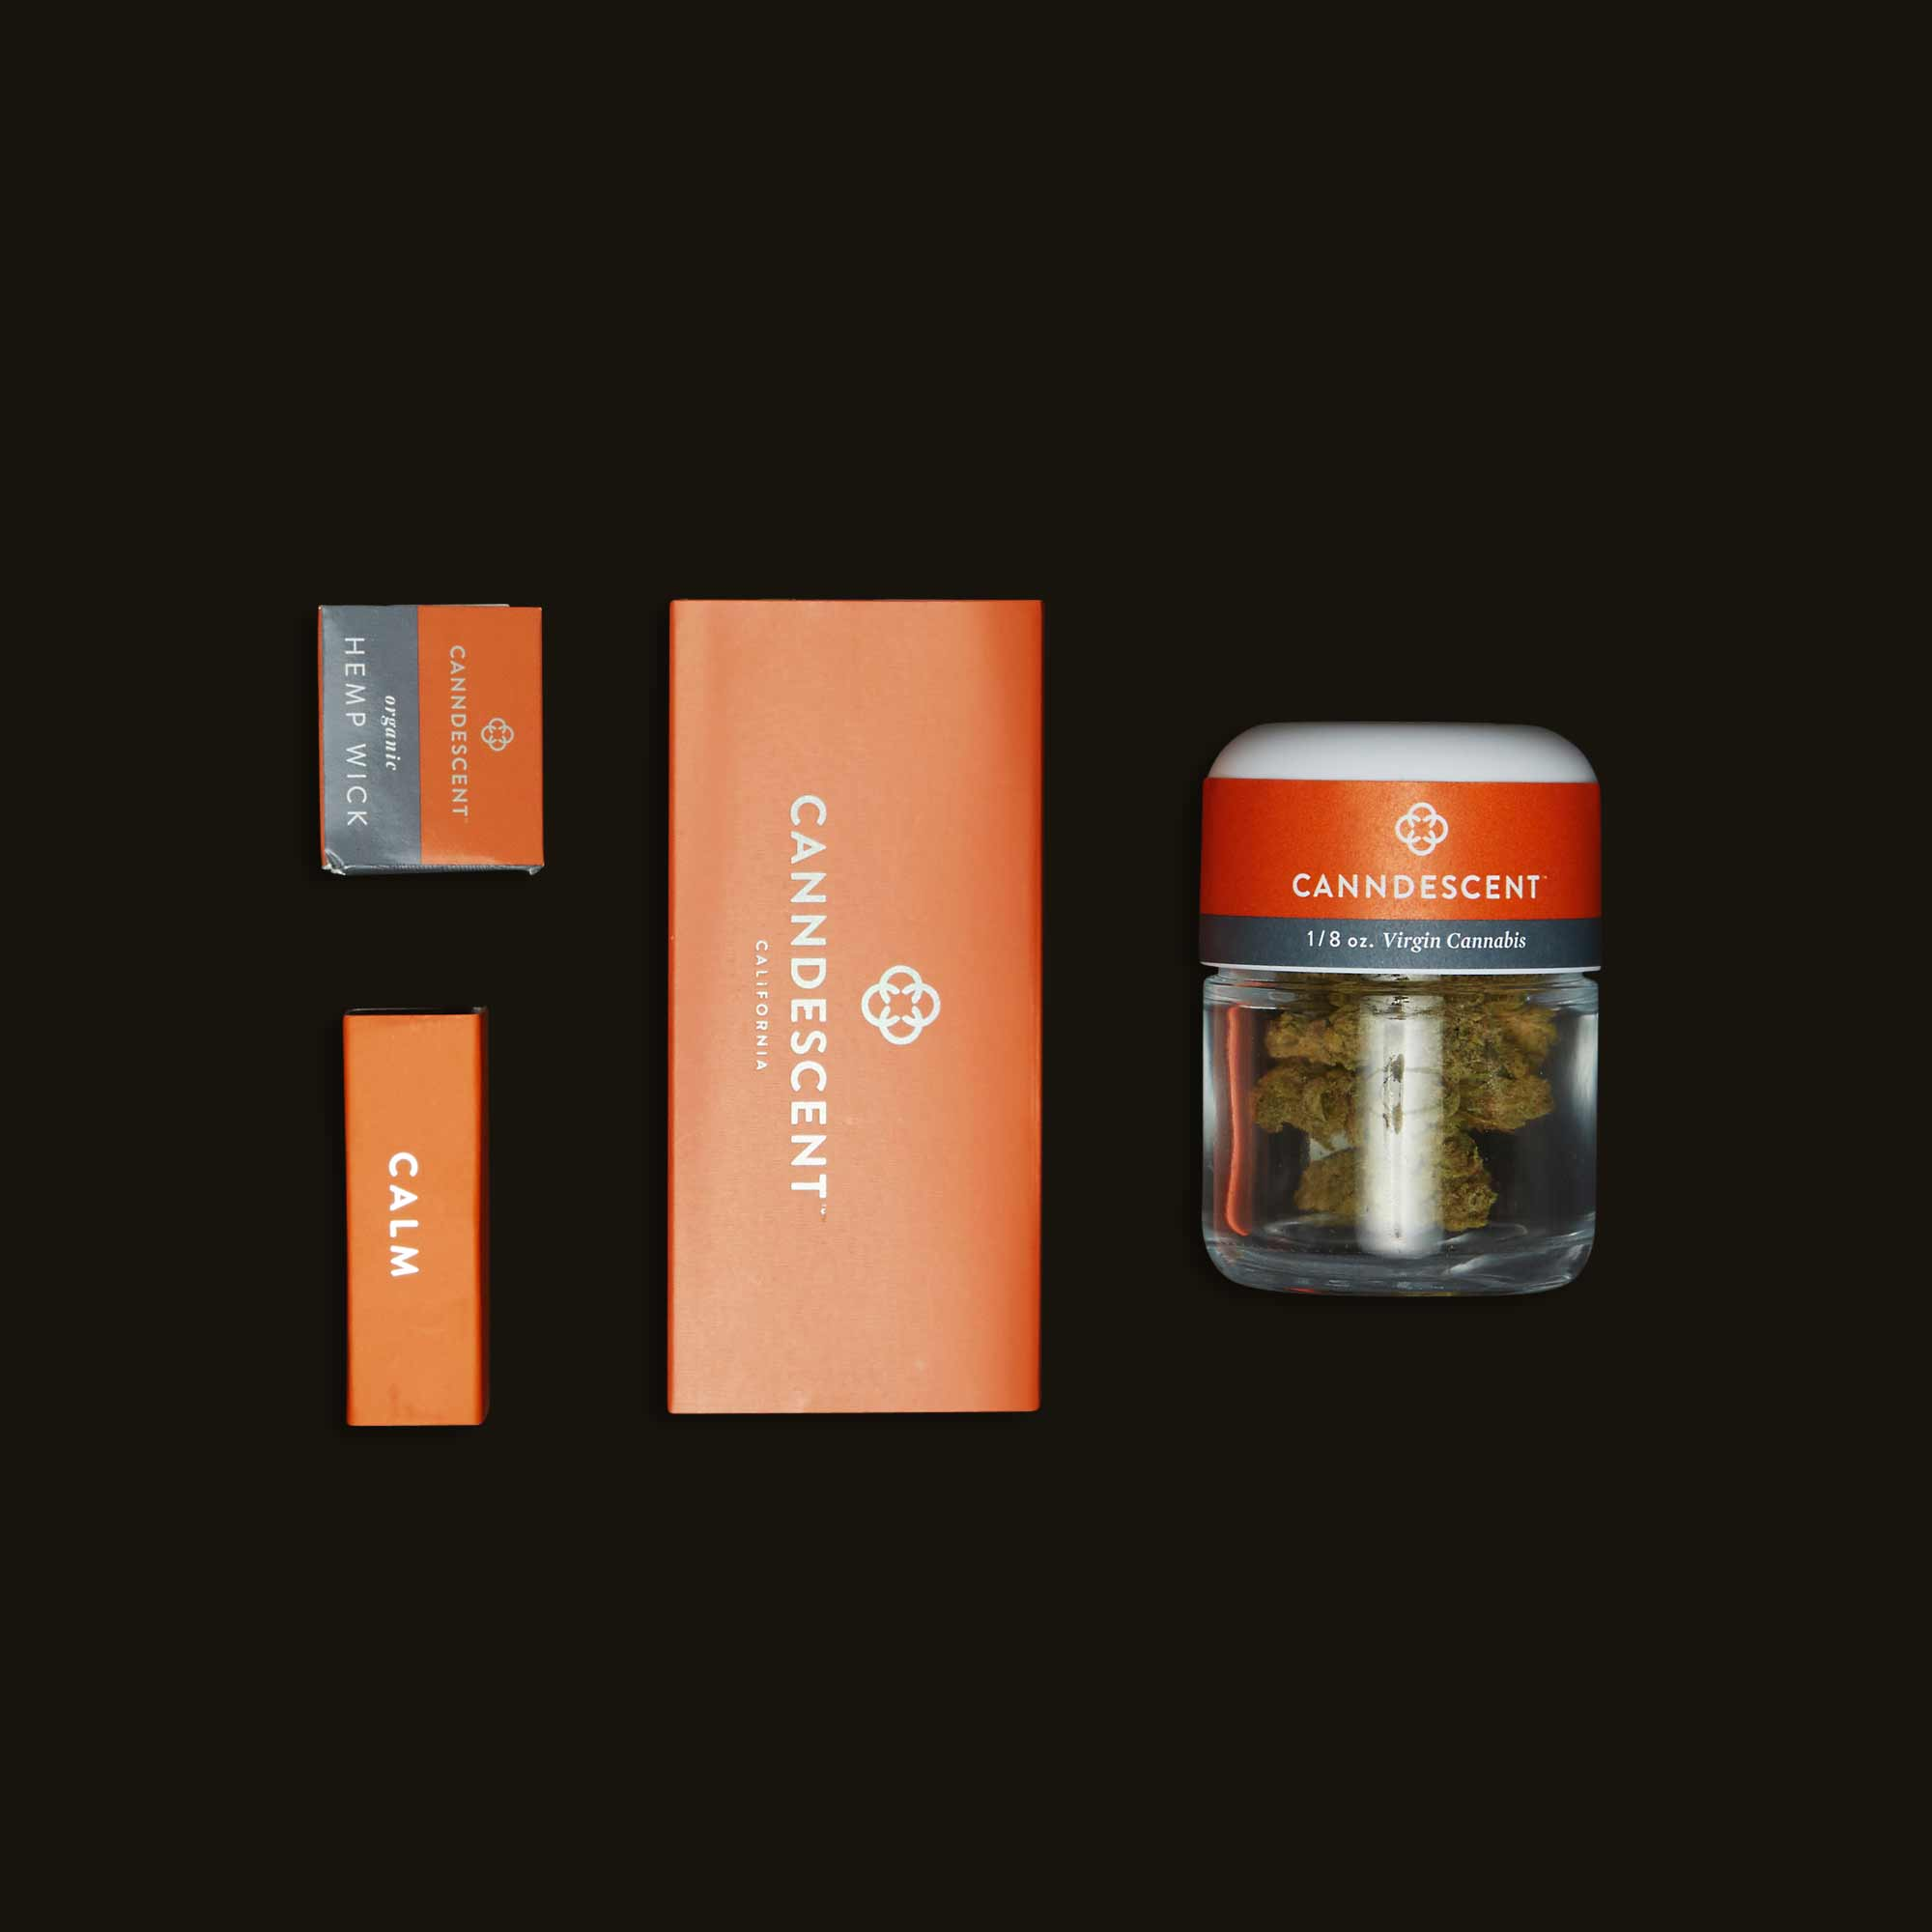 Candescent Calm weed packaging